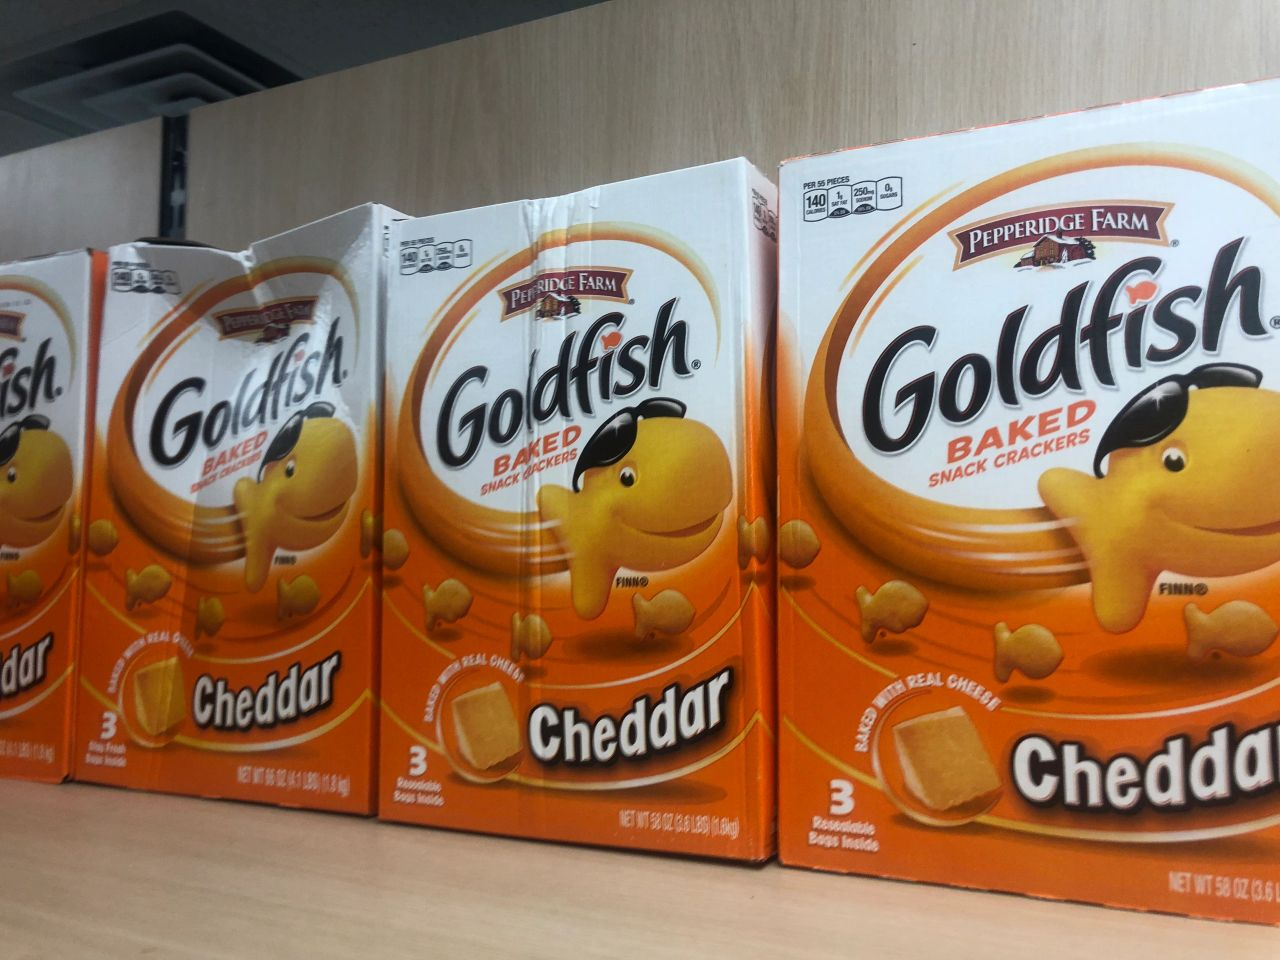 Giant 58-ounce boxes of Pepperidge Farm Goldfish, may in various states of disrepair.